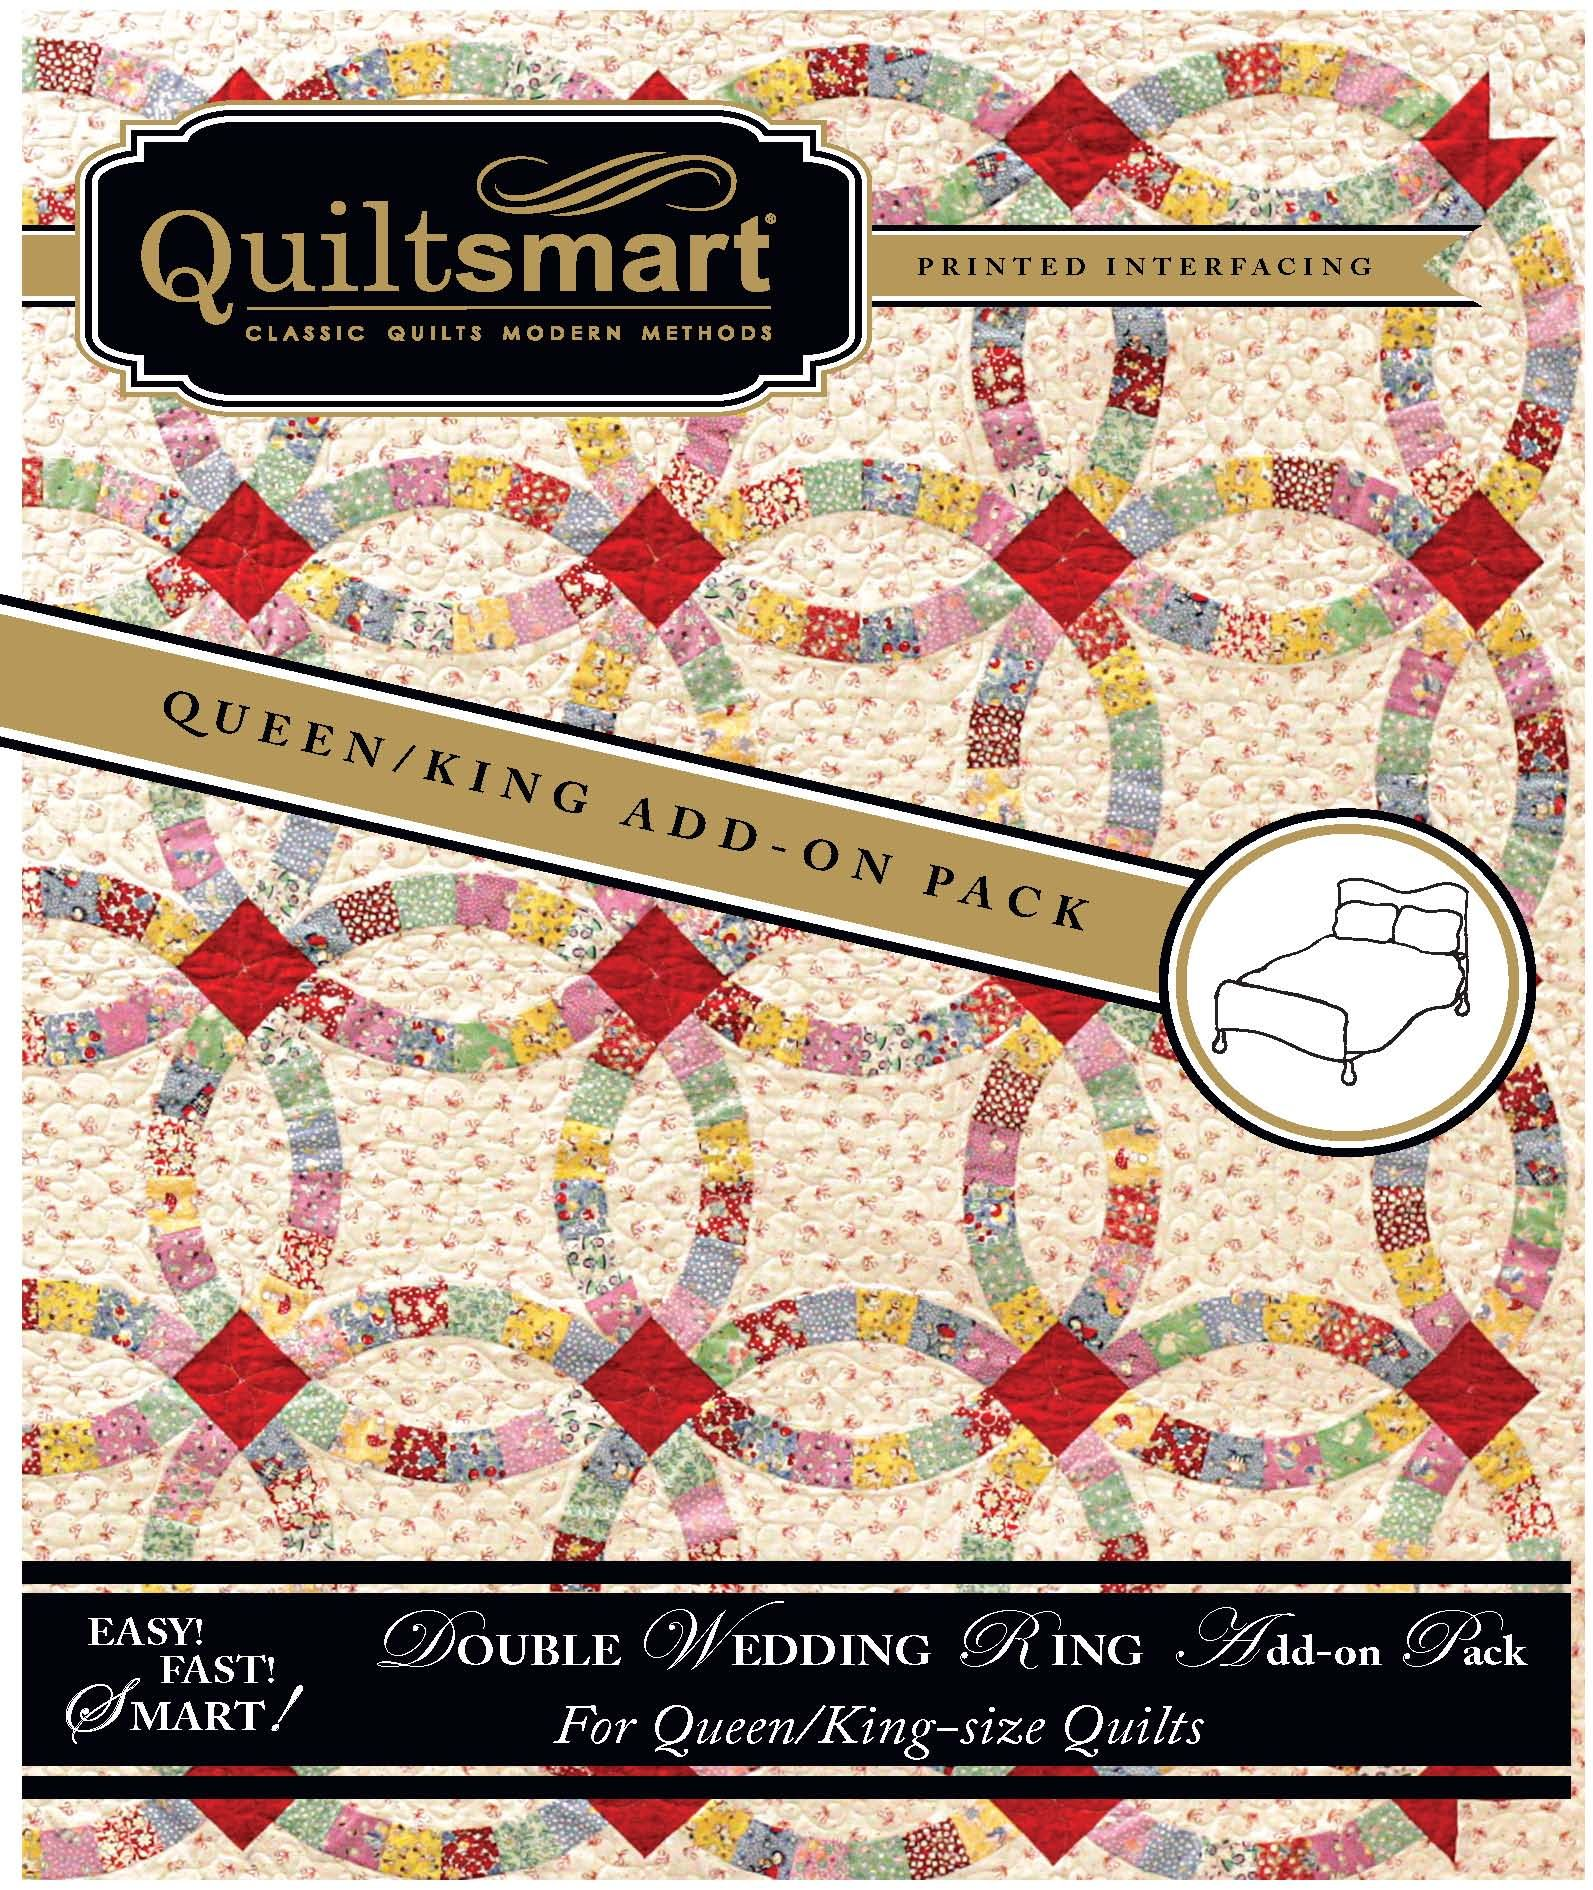 Double Wedding Ring Add On Pack Paper Piecing Quilts Quilted Bag Patterns Wedding Quilt